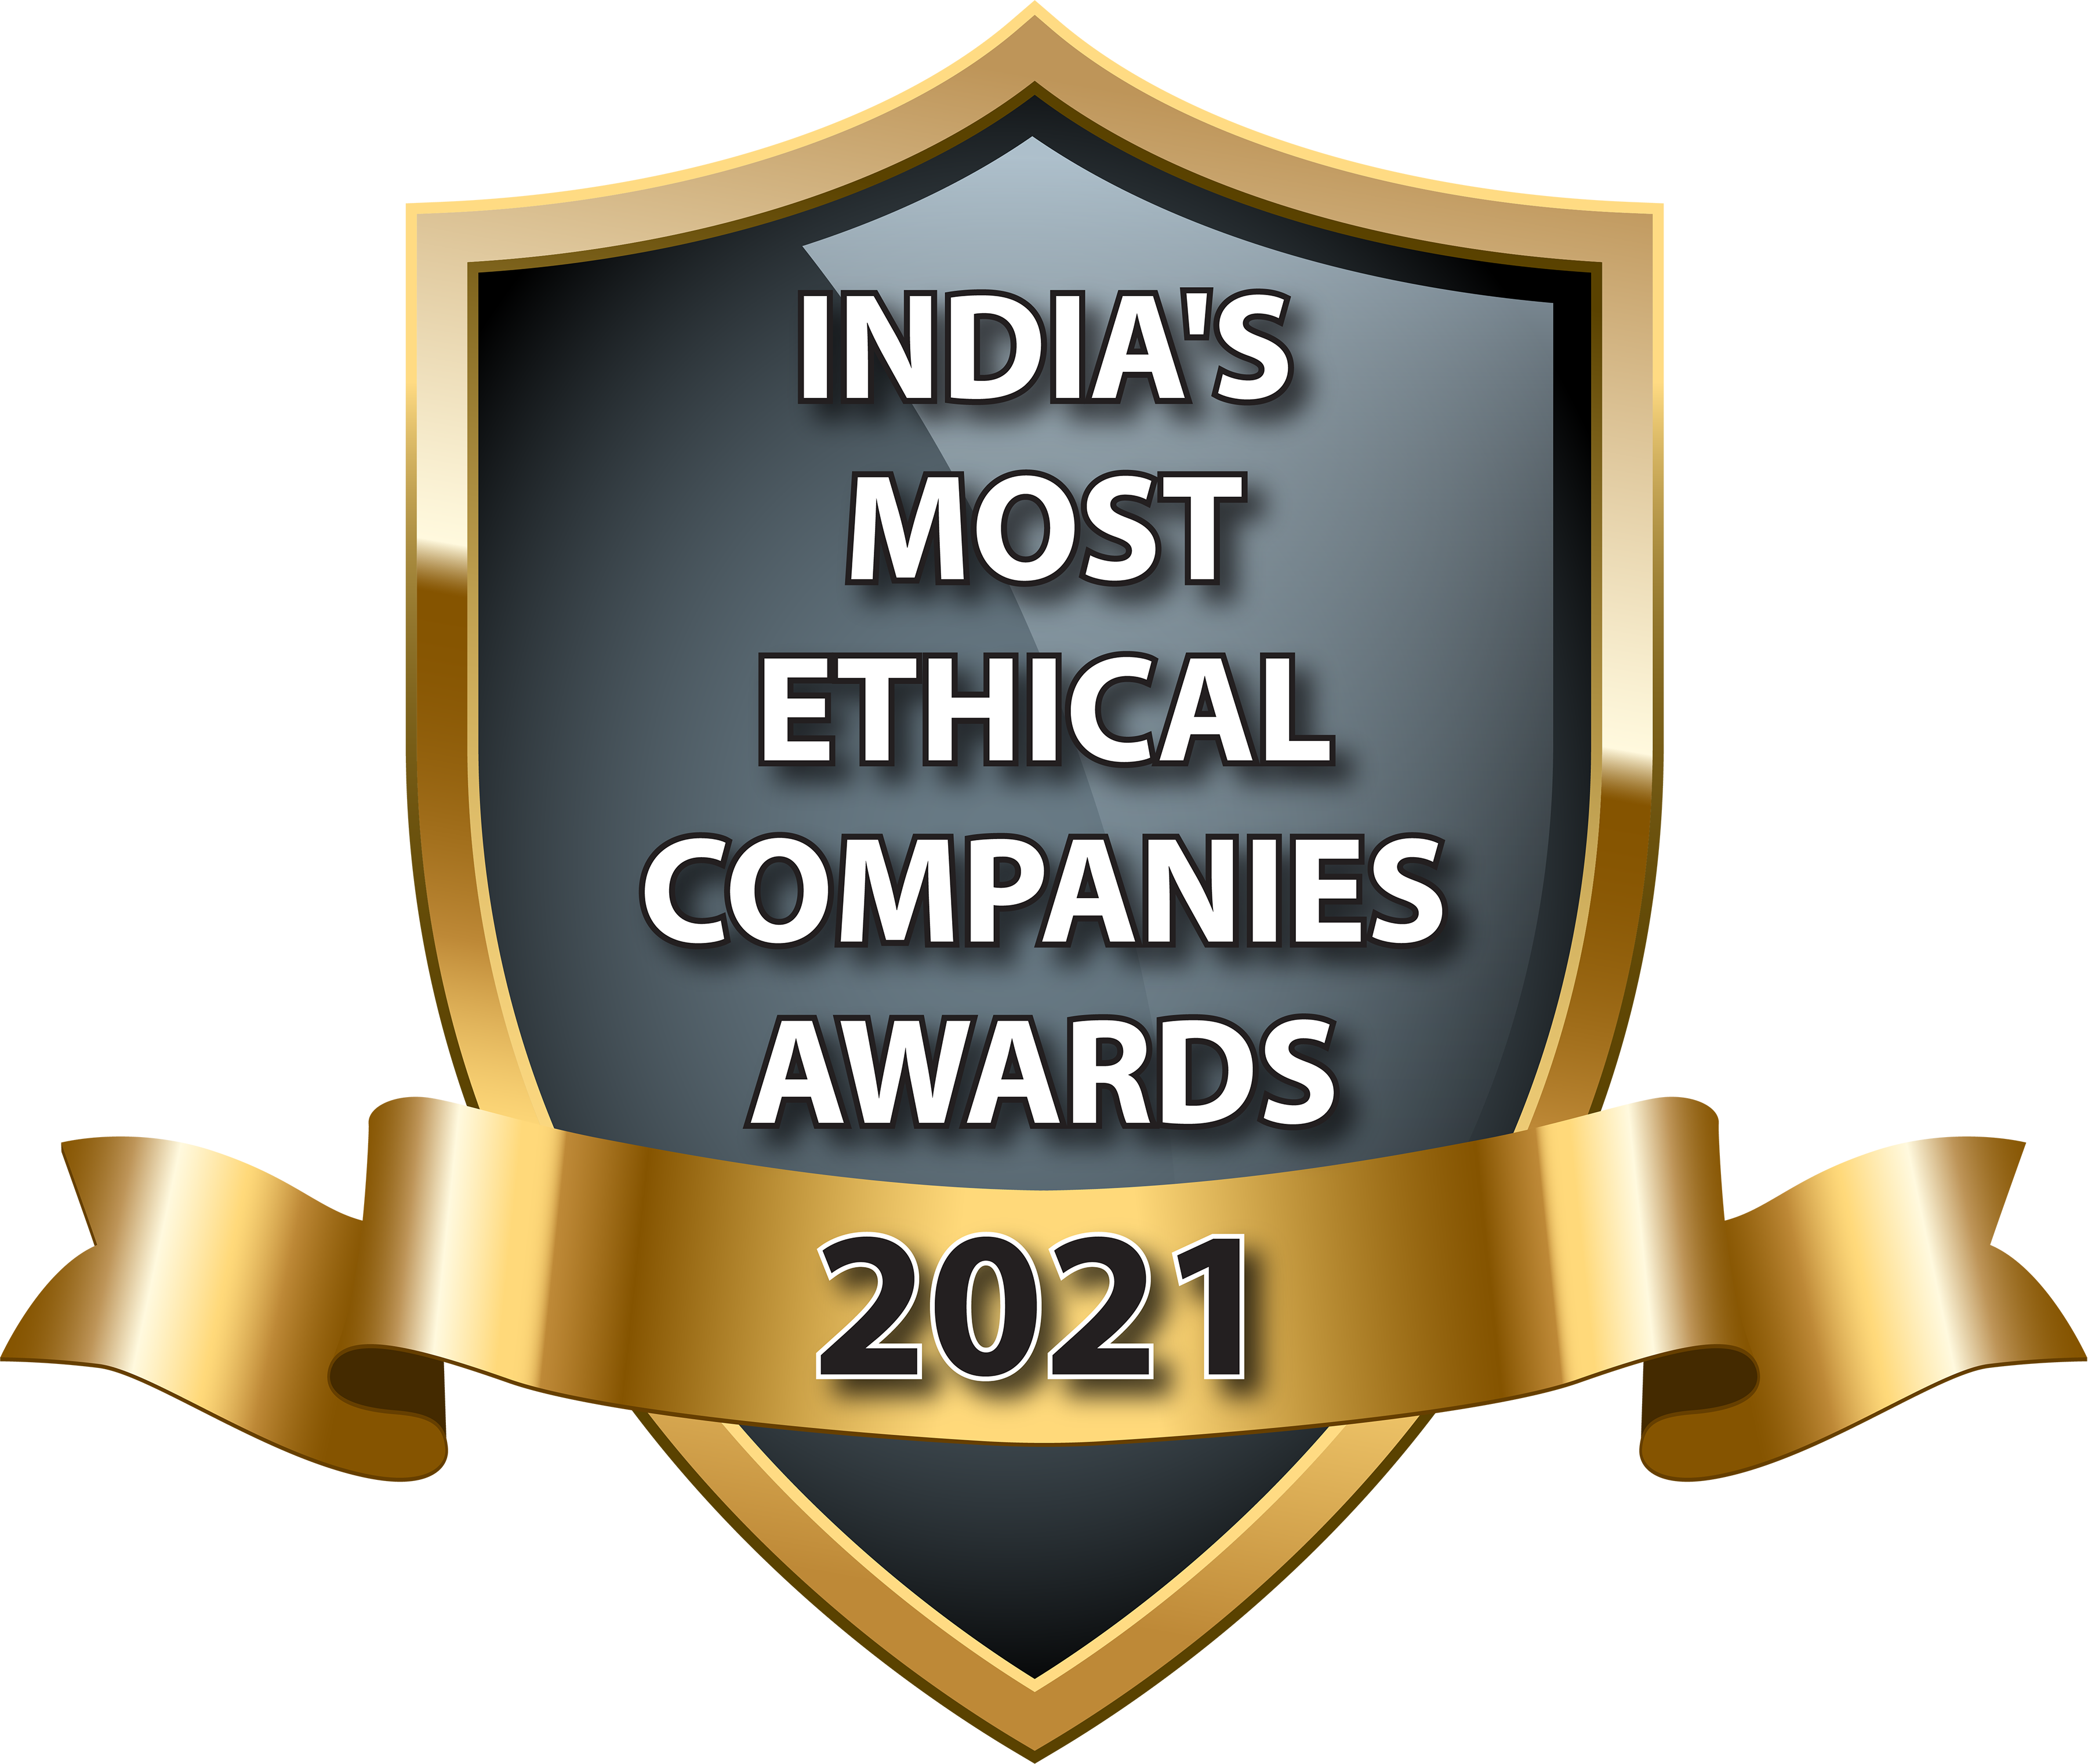 India's Most Ethical Companies Awards 2021 | An Online Reward & Recognition Initiative